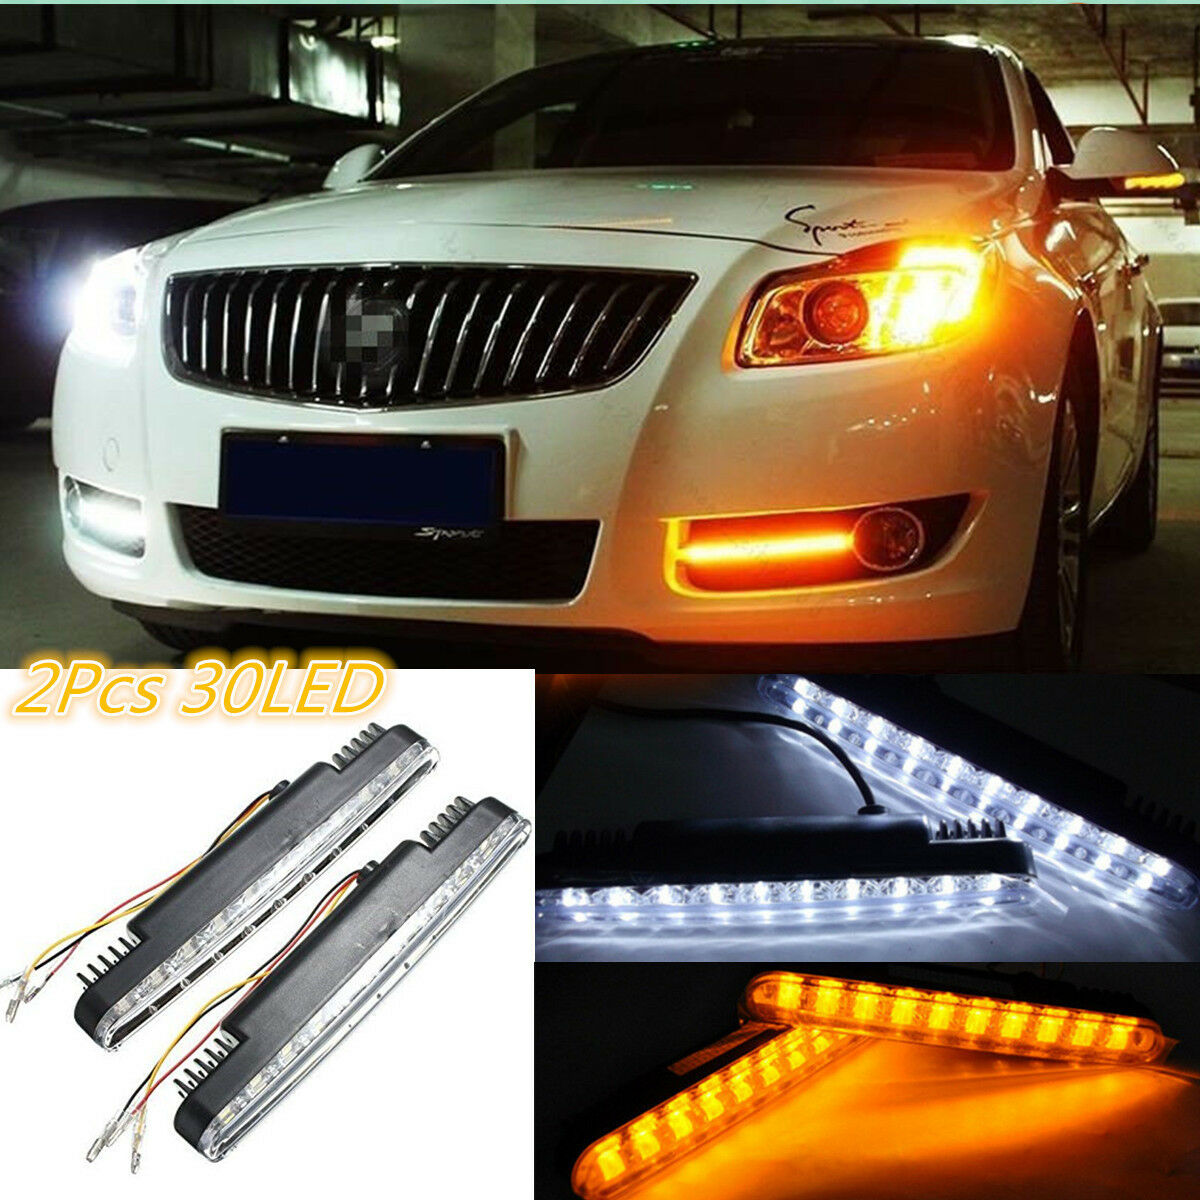 2pcs 30 Led Car Truck Daytime Running Lights Daylight Kit Drl Turn Wiring Drls On A Caravan Signal 12v Dc